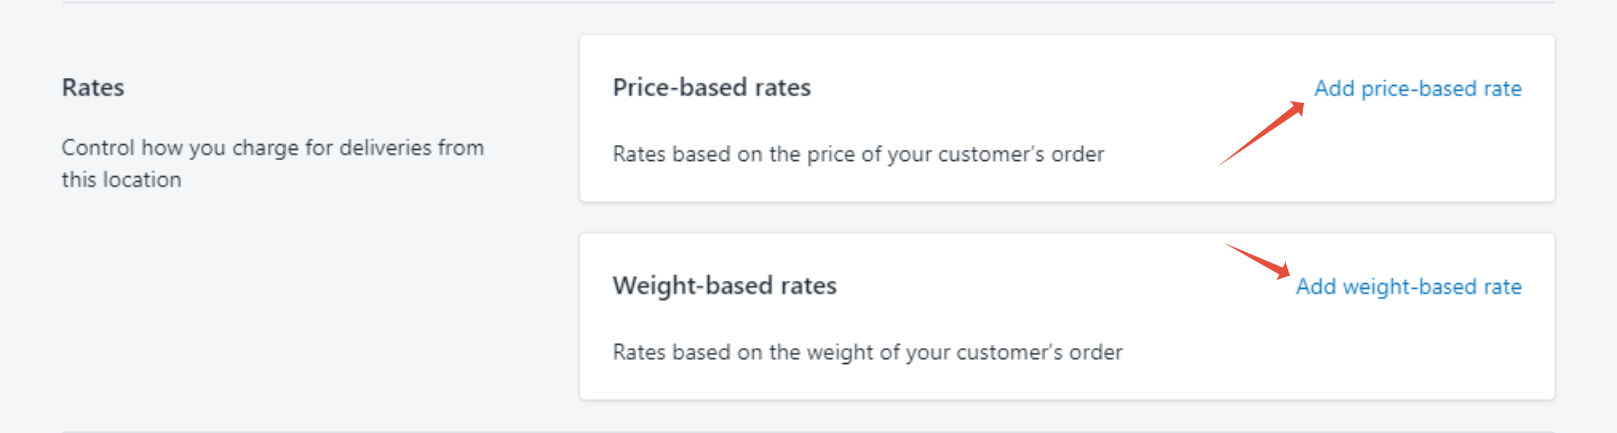 Click price-based rate or weight-based rate